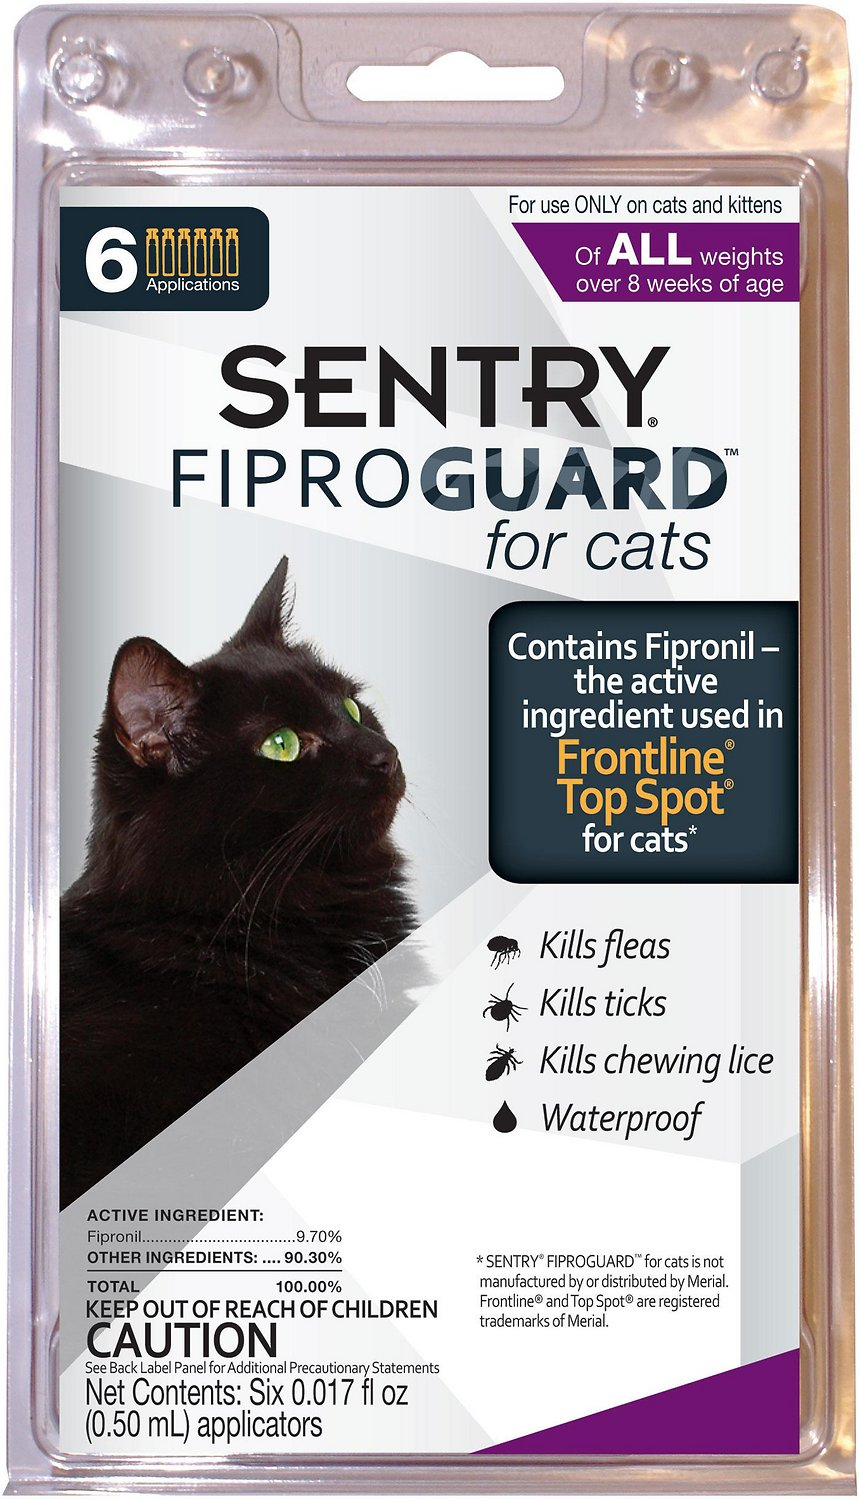 Cat Products | SENTRY Pet Care Products